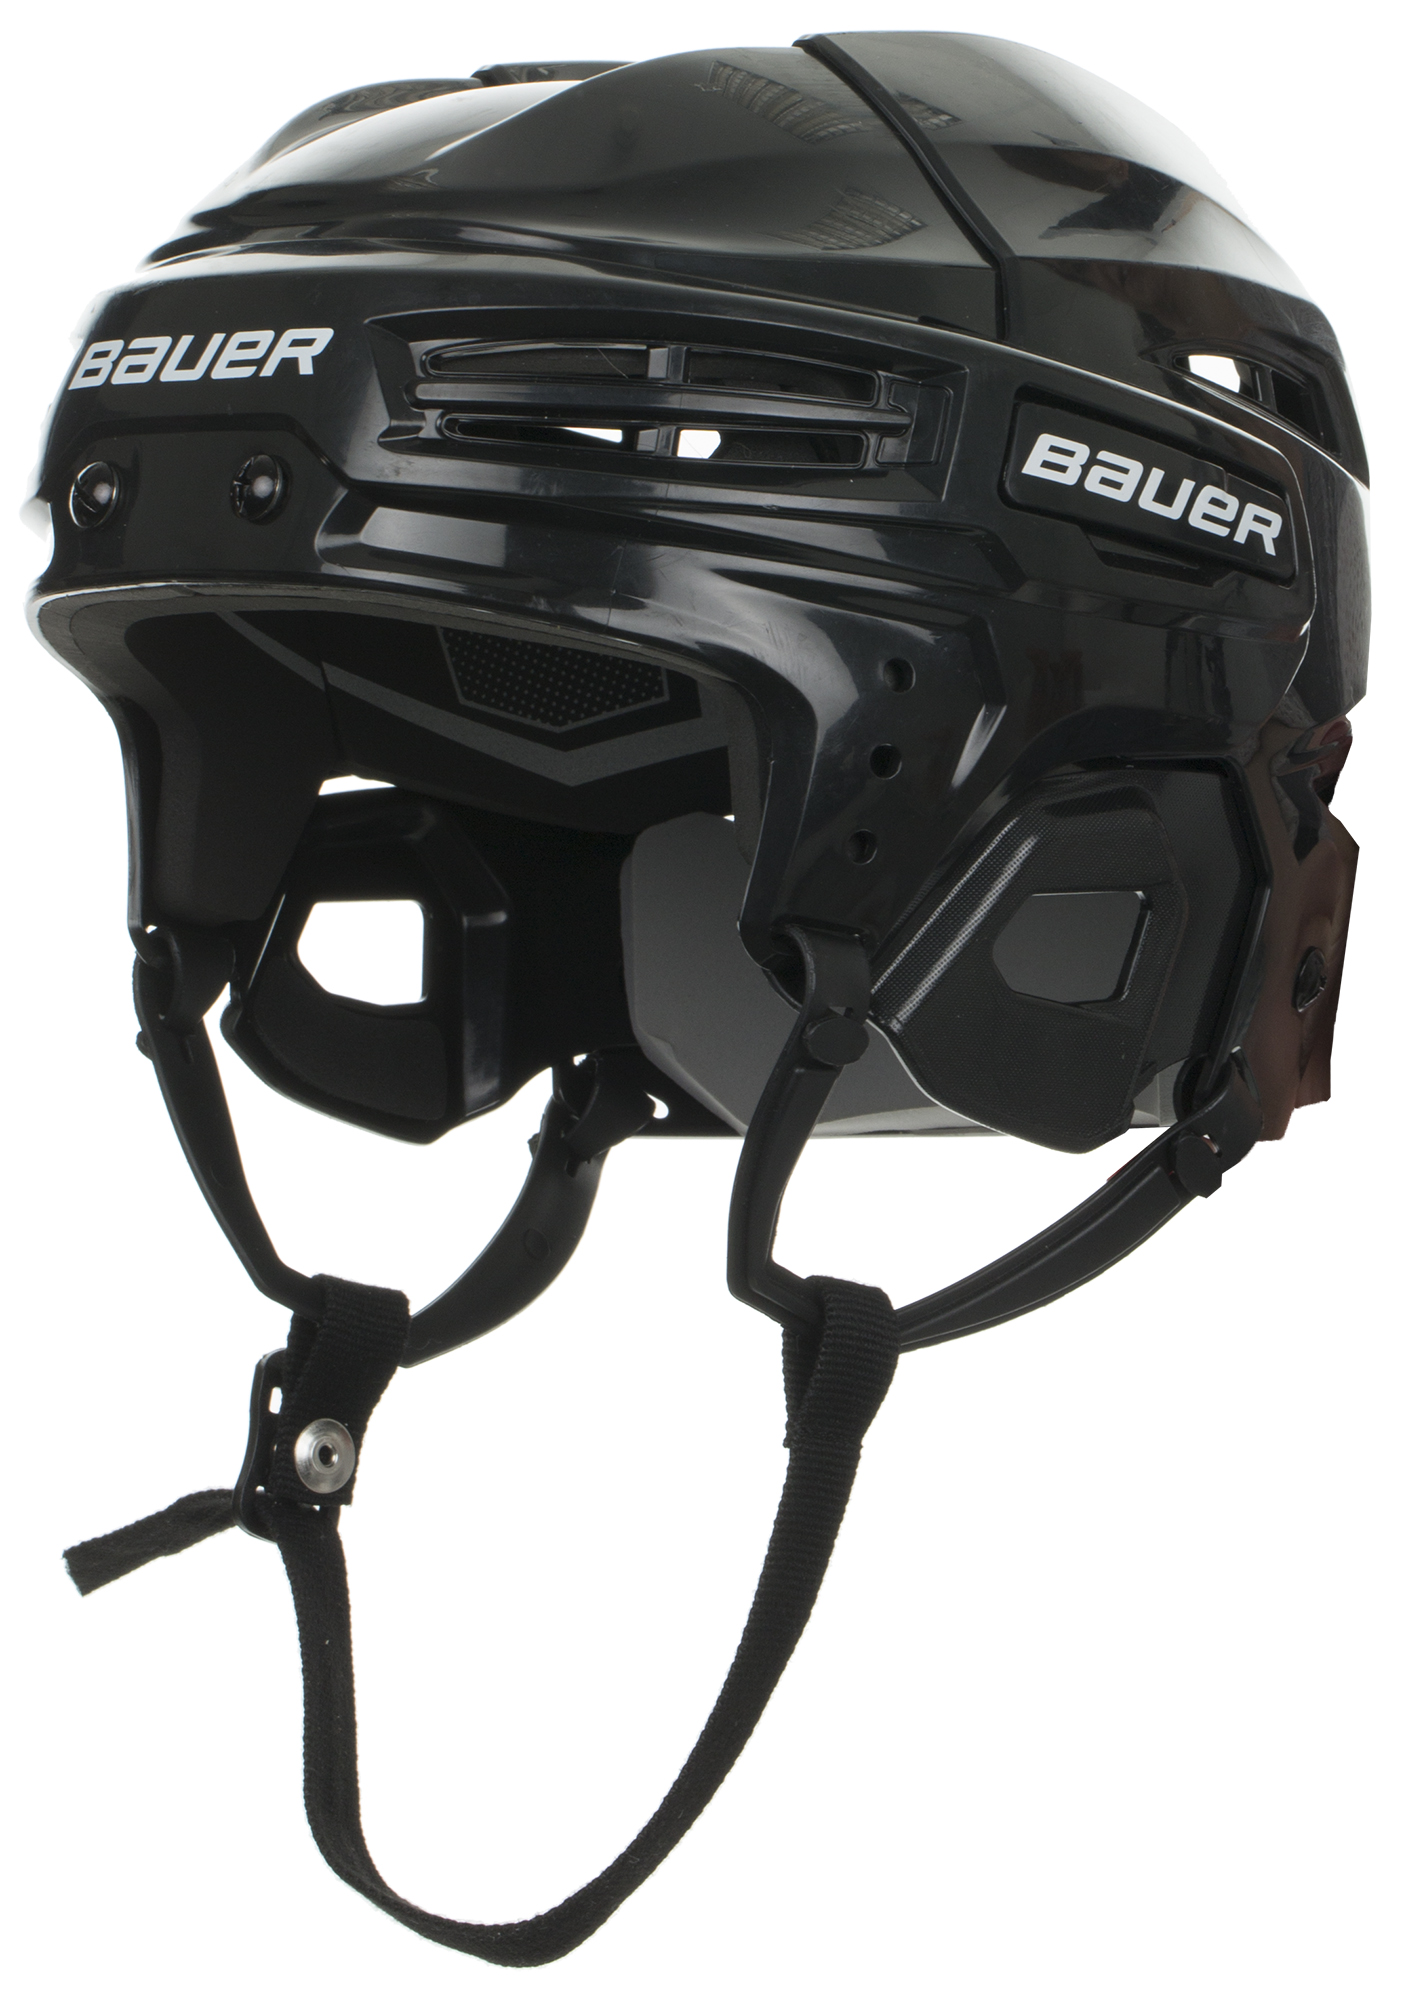 Bauer Шлем хоккейный Bauer IMS 5.0 maverick king chair ac2002 2